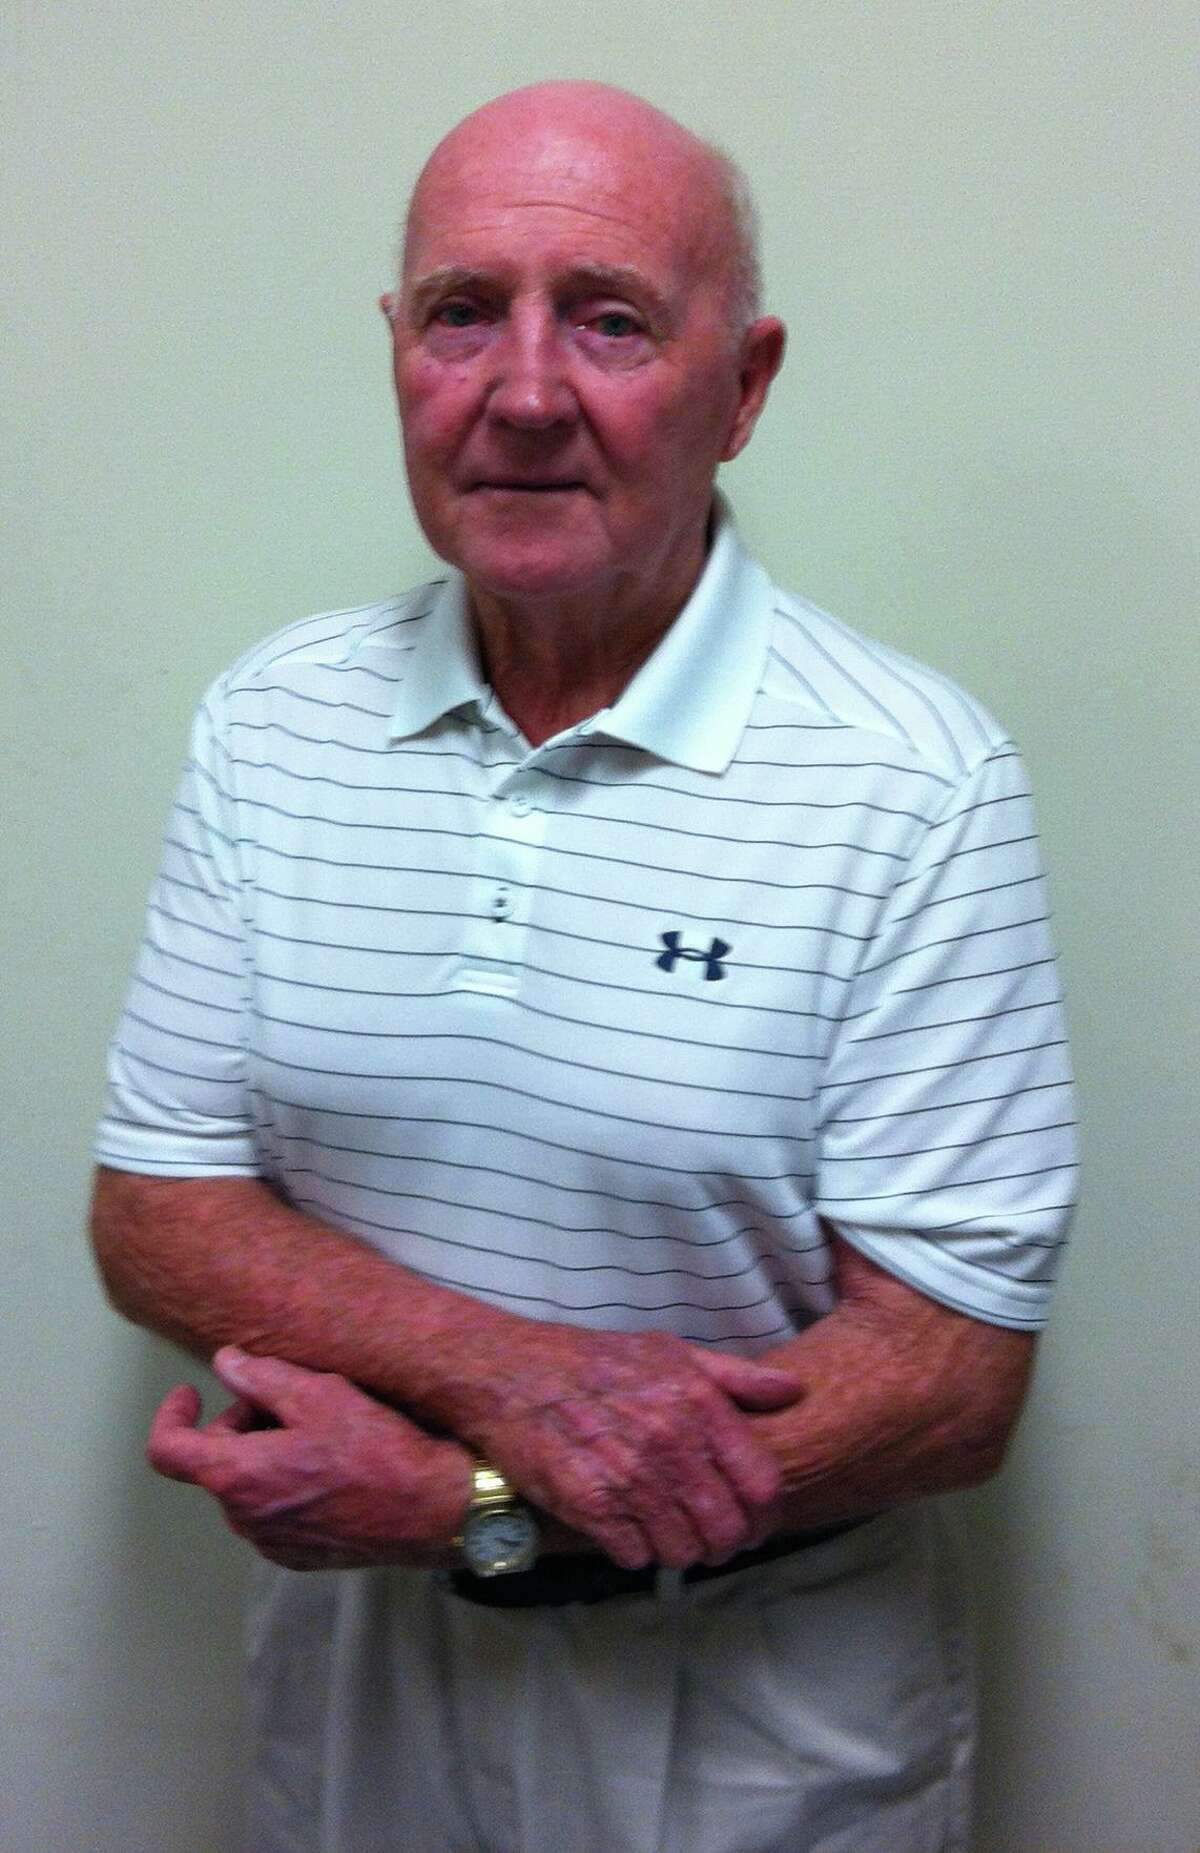 Paul Lane, former Staples High School football coach, seen here in 2012. Lane died in June, 2021 and the Westport RTM has voted to name Staples' football field after him.